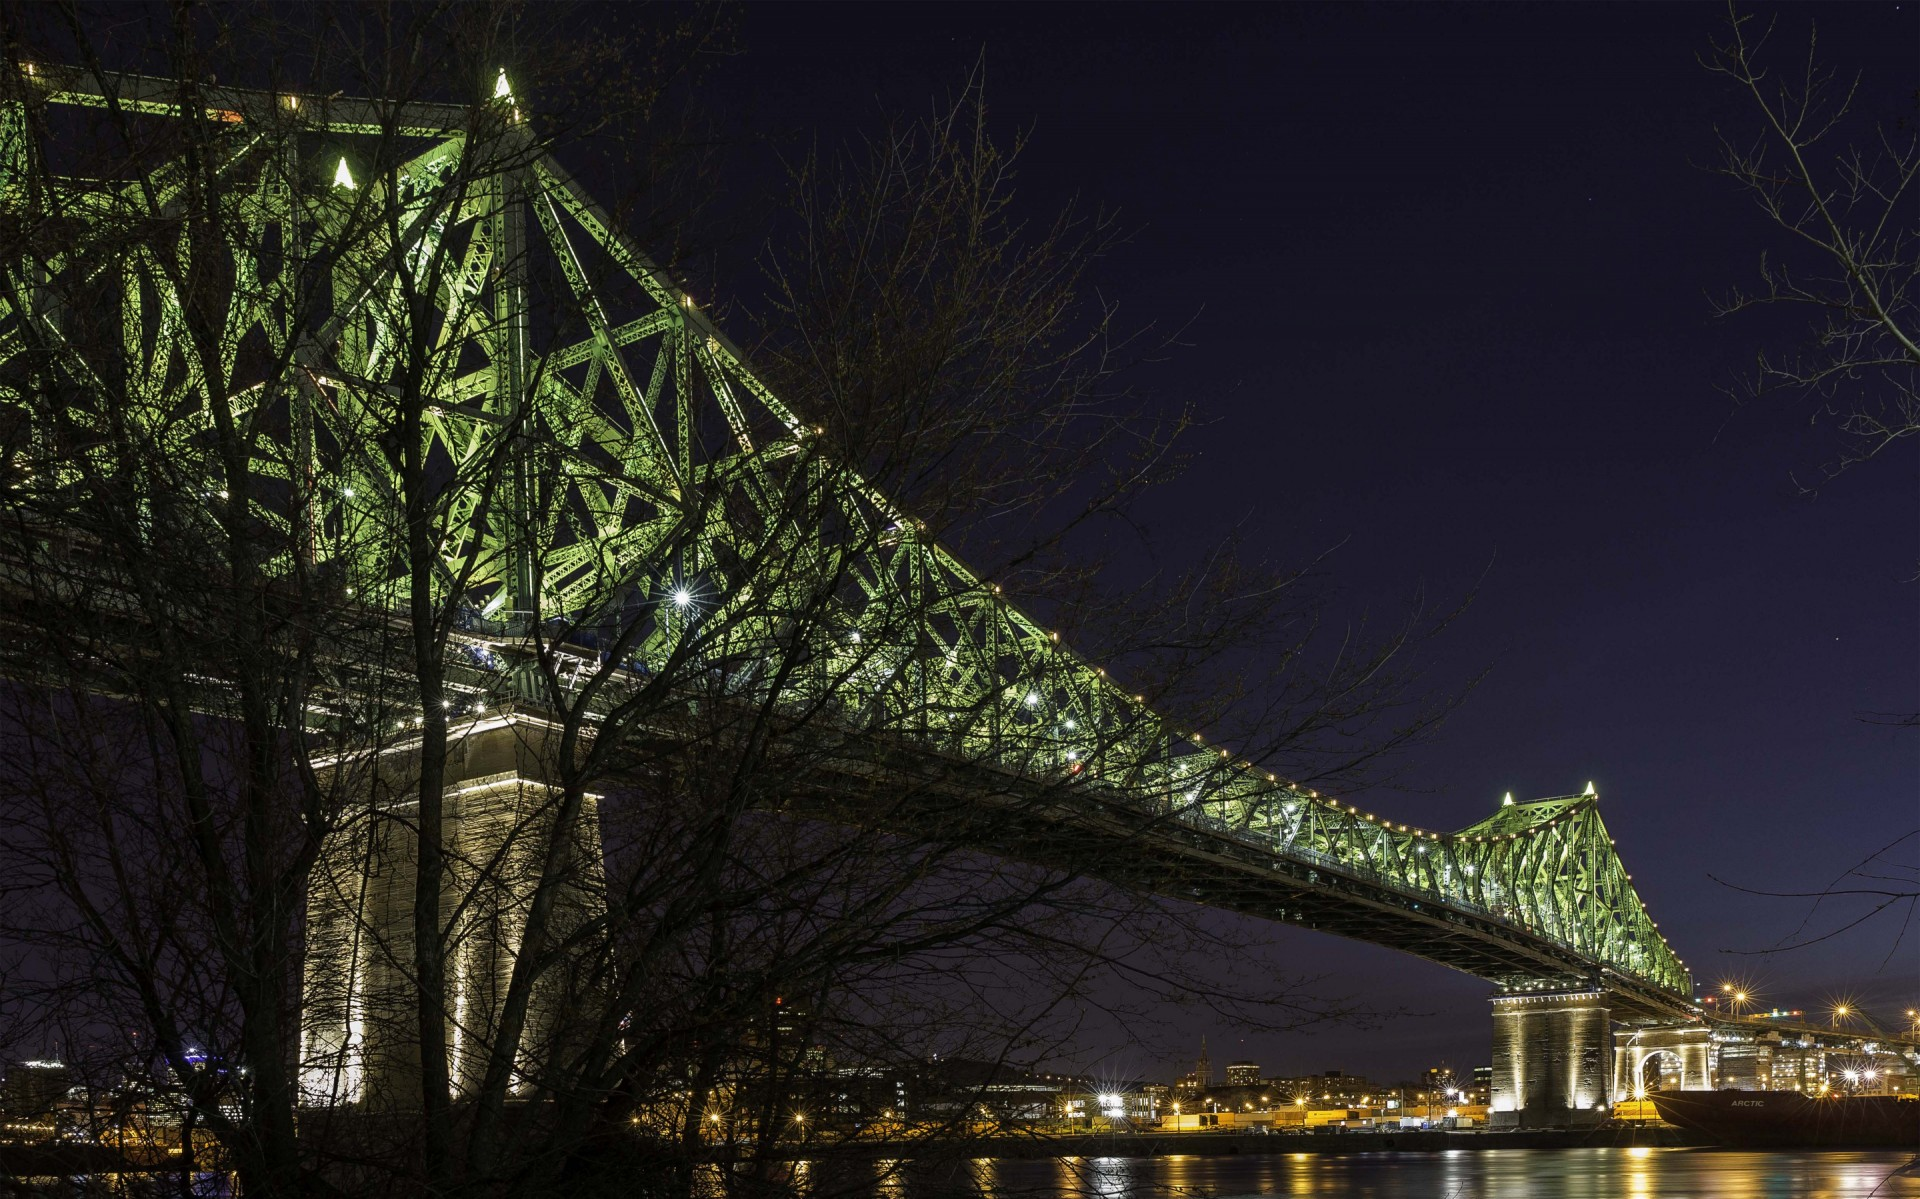 Le système de contrôle traduit visuellement l'humeur de Montréal selon la météo, la circulation et les grands événements par l'intensité, la vitesse et la densité de l'éclairage.  – The Jacques Cartier and Champlain Bridges Incorporated